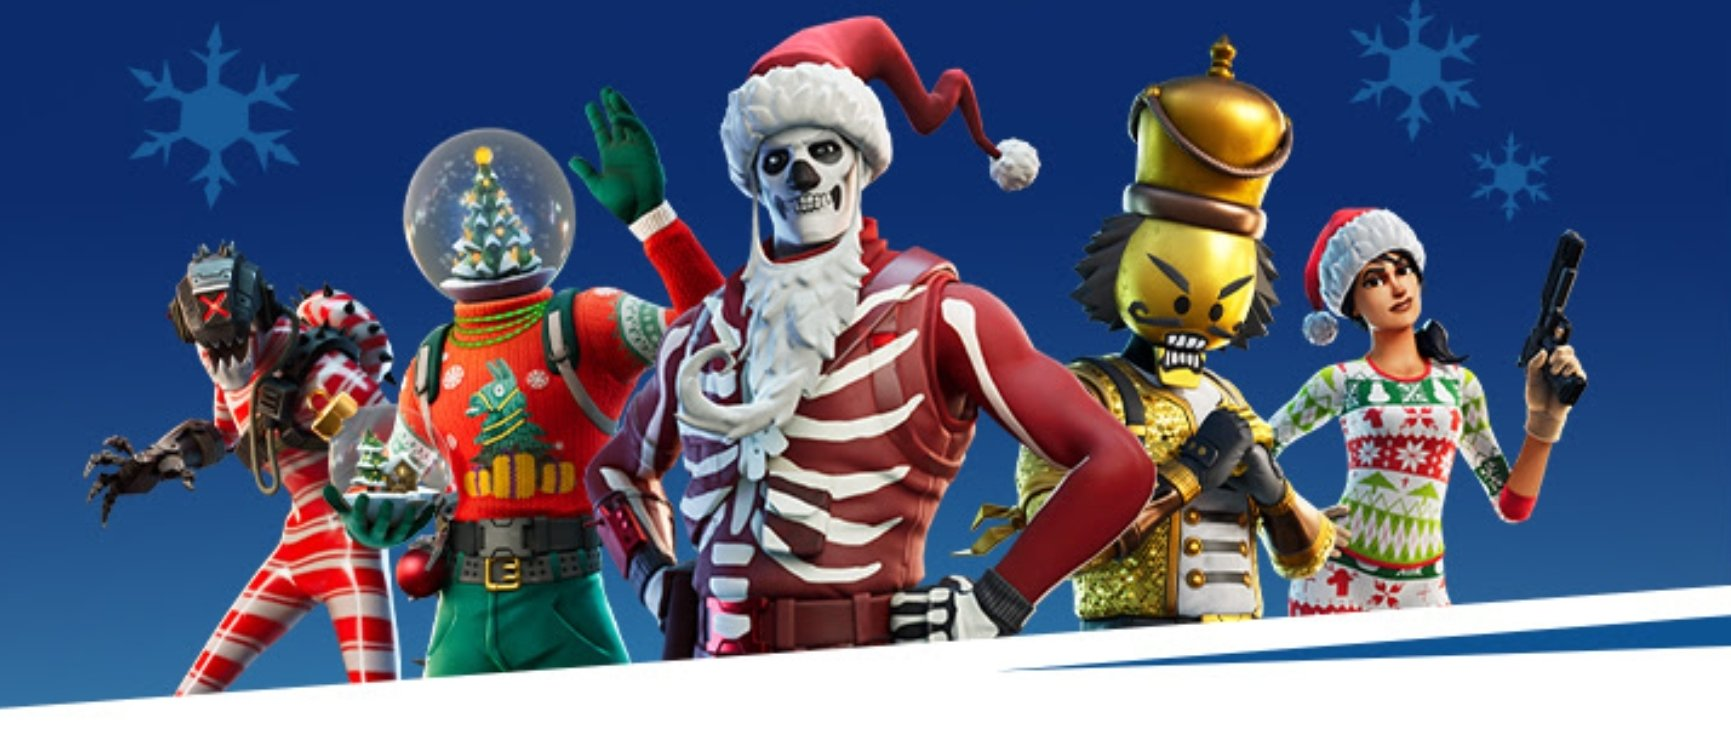 New Fortnite Christmas Skin Leaked | Fortnite Insider